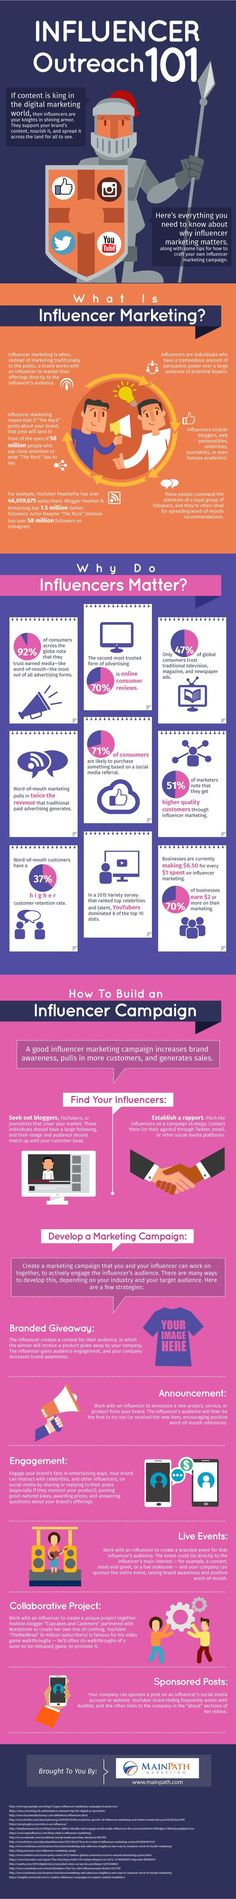 How to Build a Successful Influencer Marketing Campaign [Infographic]